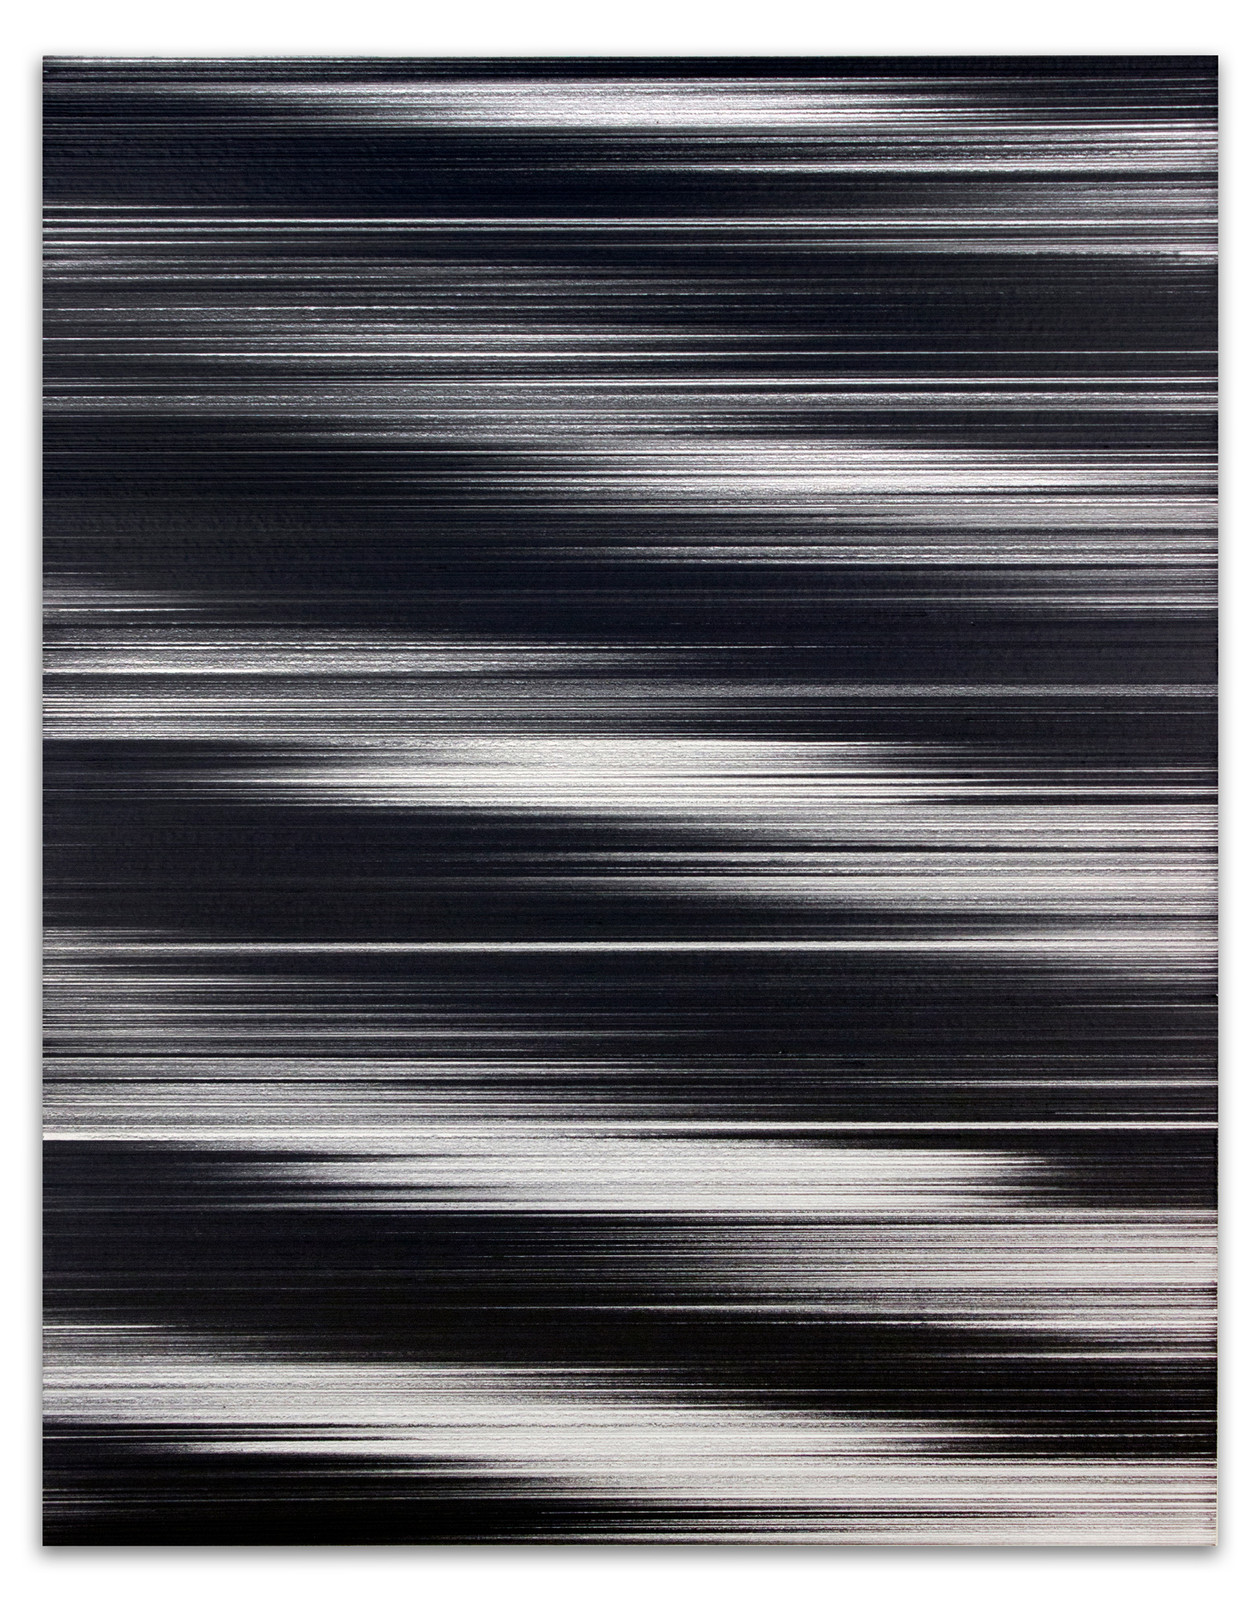 Waves in black & white No. 1 (2017) by John Whitten